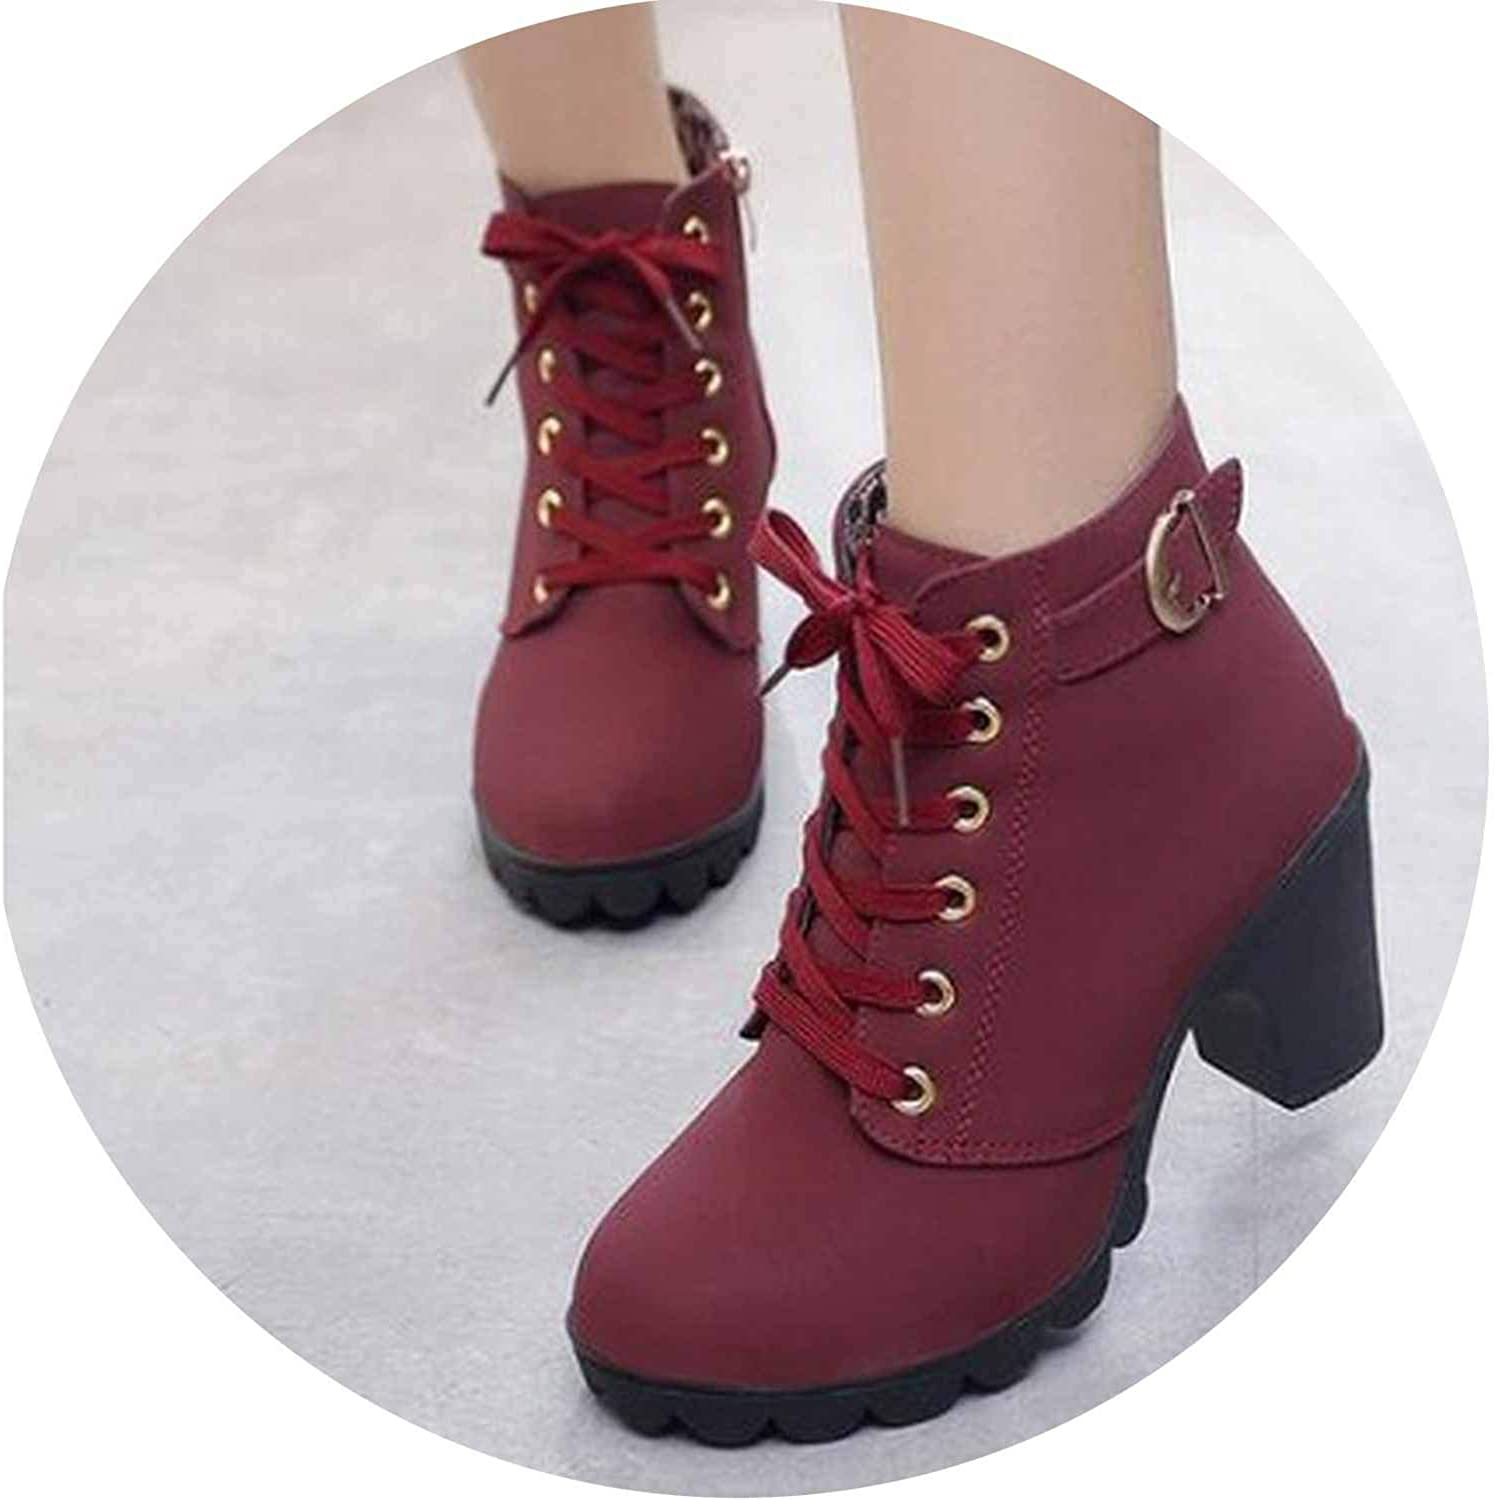 Autumn Winter Women Boots Solid Lace-up European Ladies shoes PU Fashion high Heels Boots